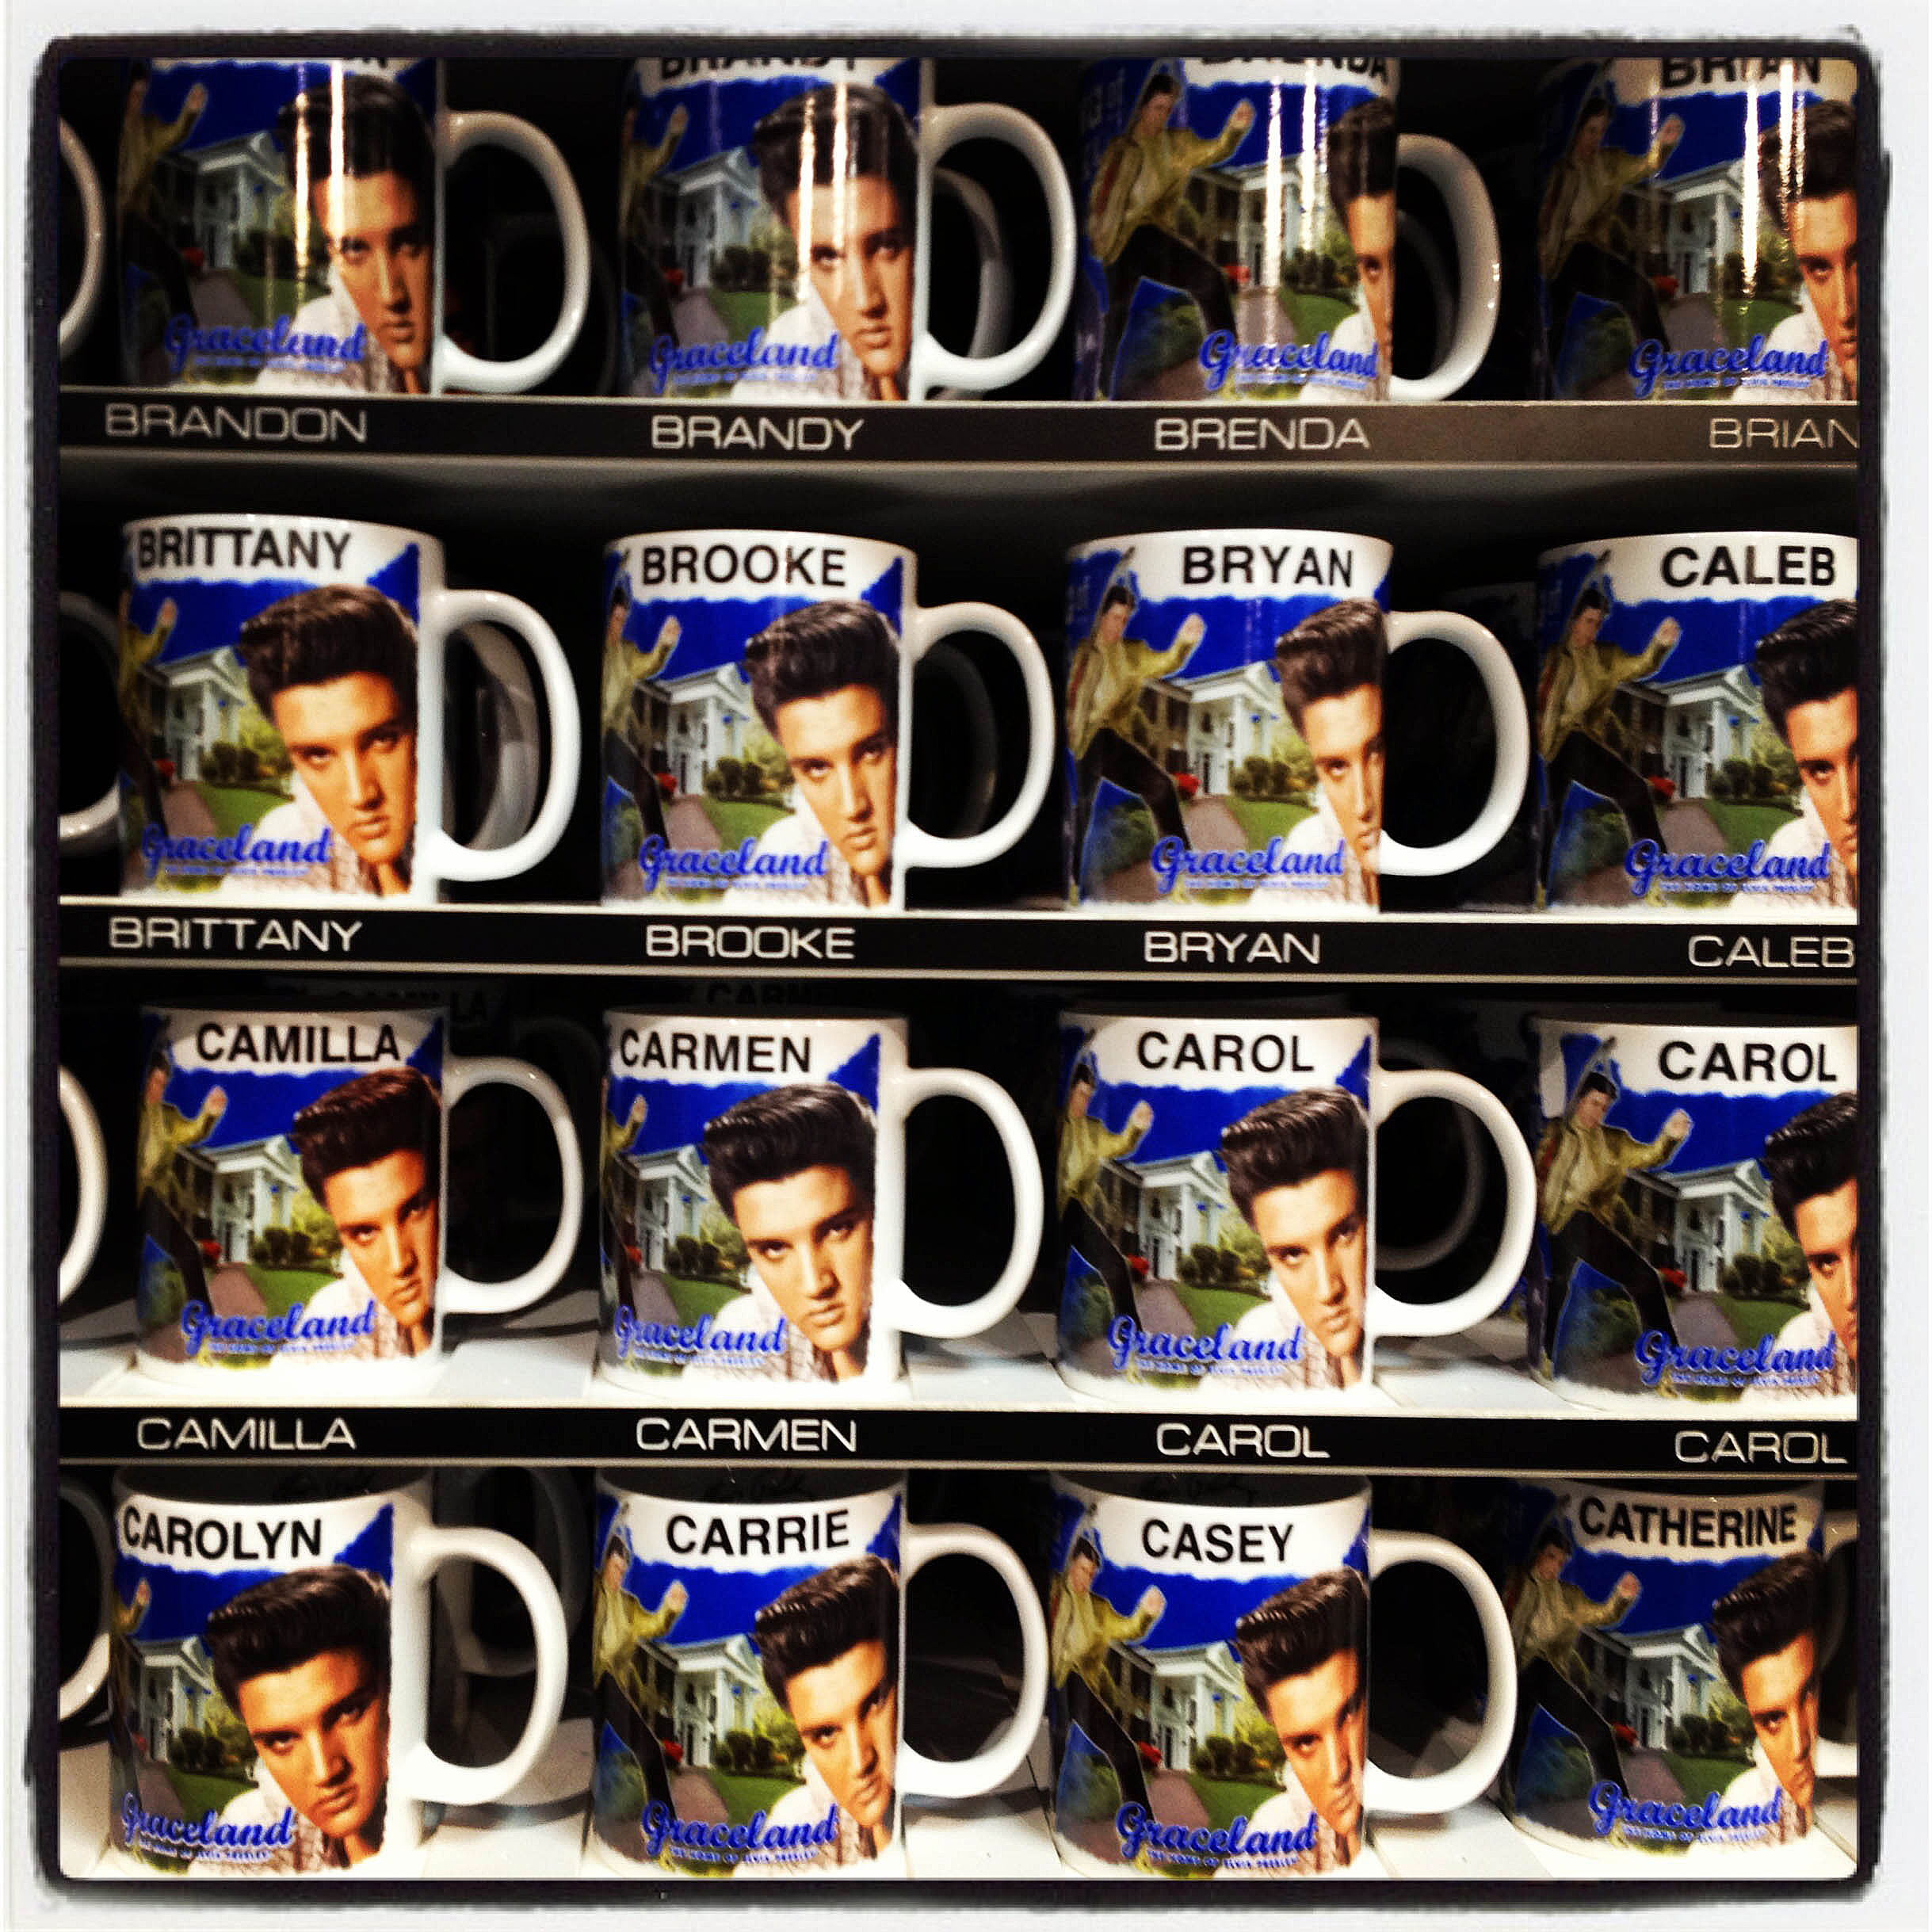 MEMPHIS, TN 01/03/14 The giftshop at Graceland sells personalized mugs with Elvis's image.  CLOE POISSON|cpoisson@courant.com